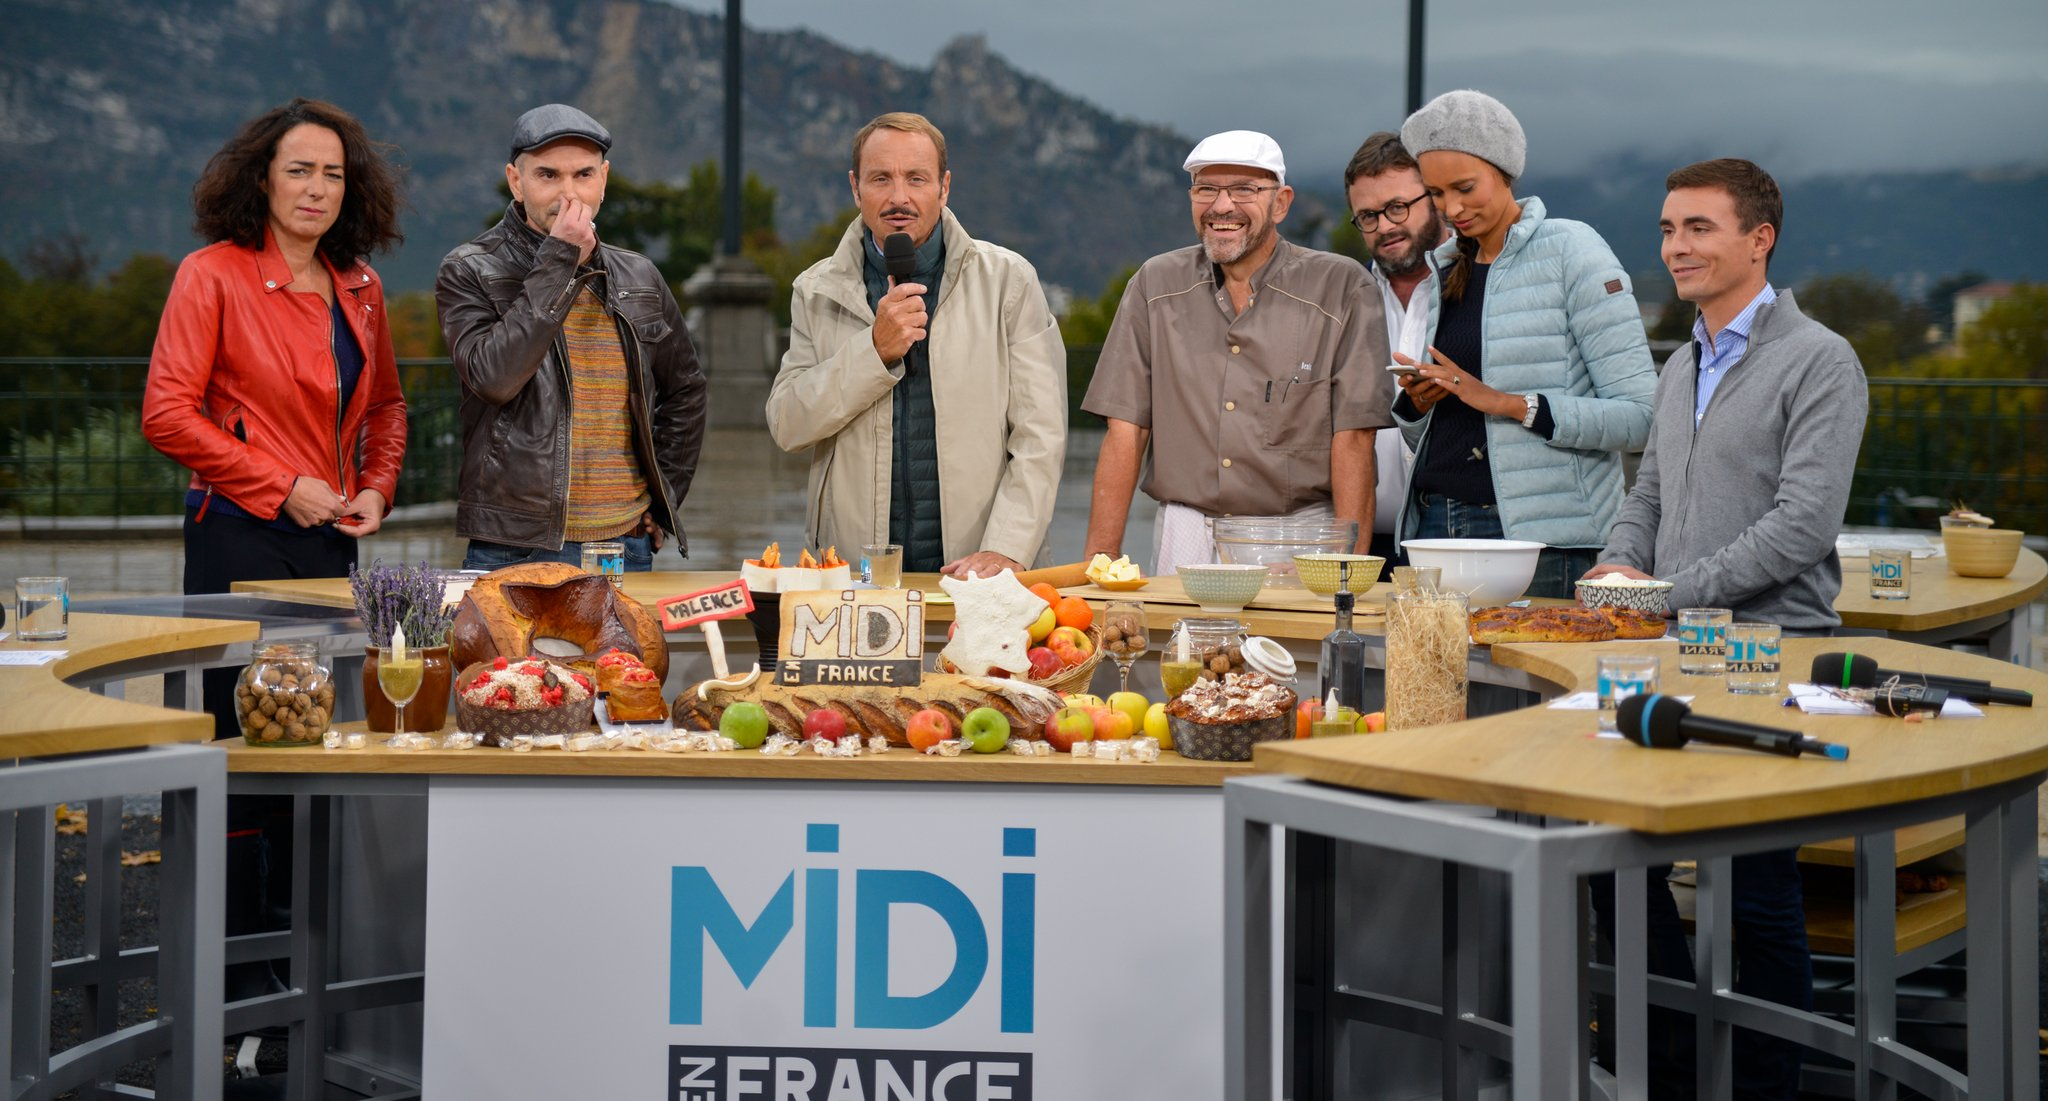 En direct sur france 3 dans l mission midi en france 27 - Emission cuisine france 3 ...